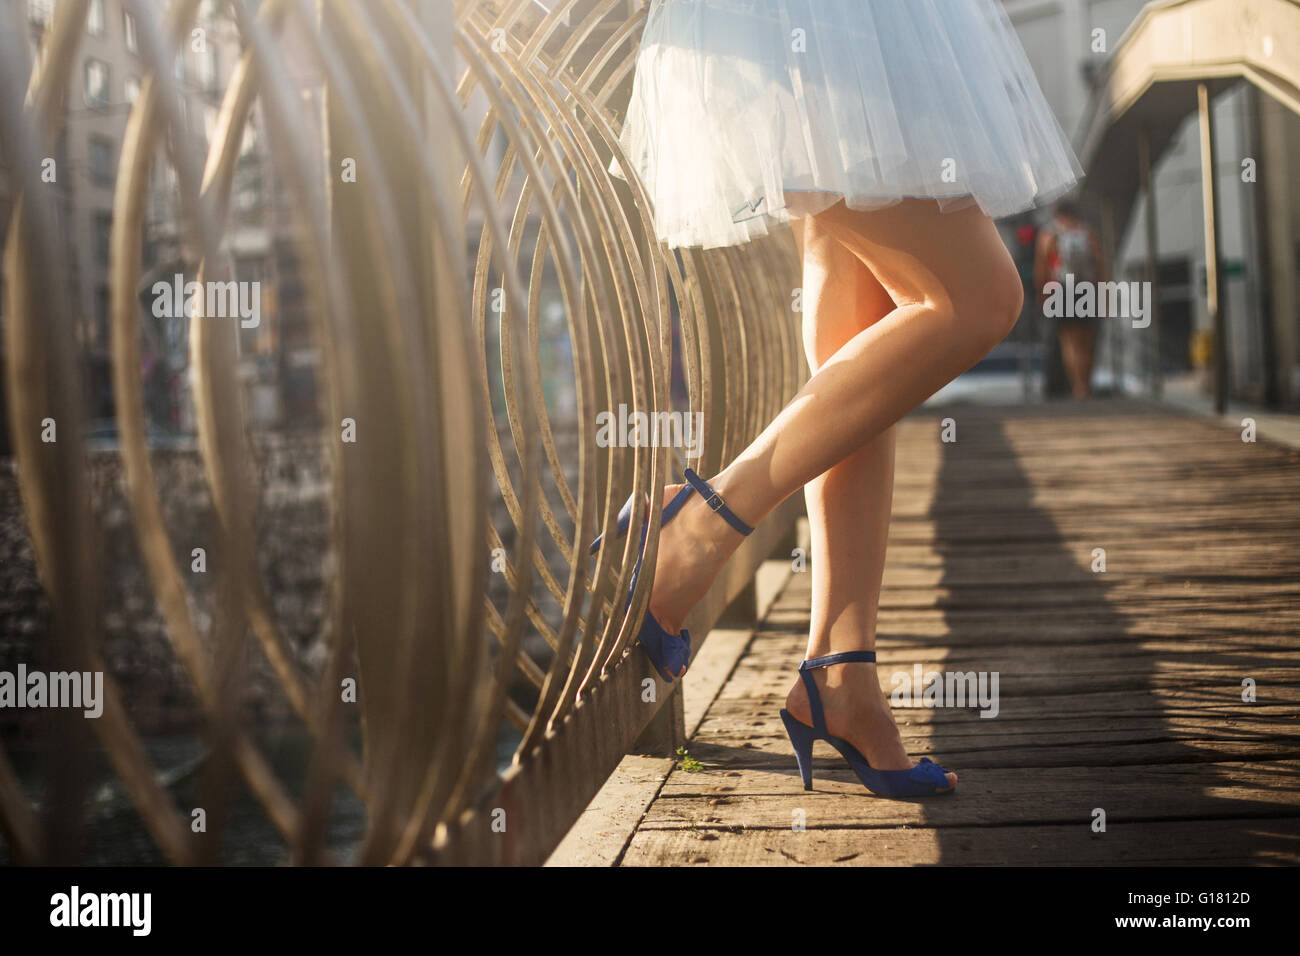 Woman's legs in high heel shoes - Stock Image